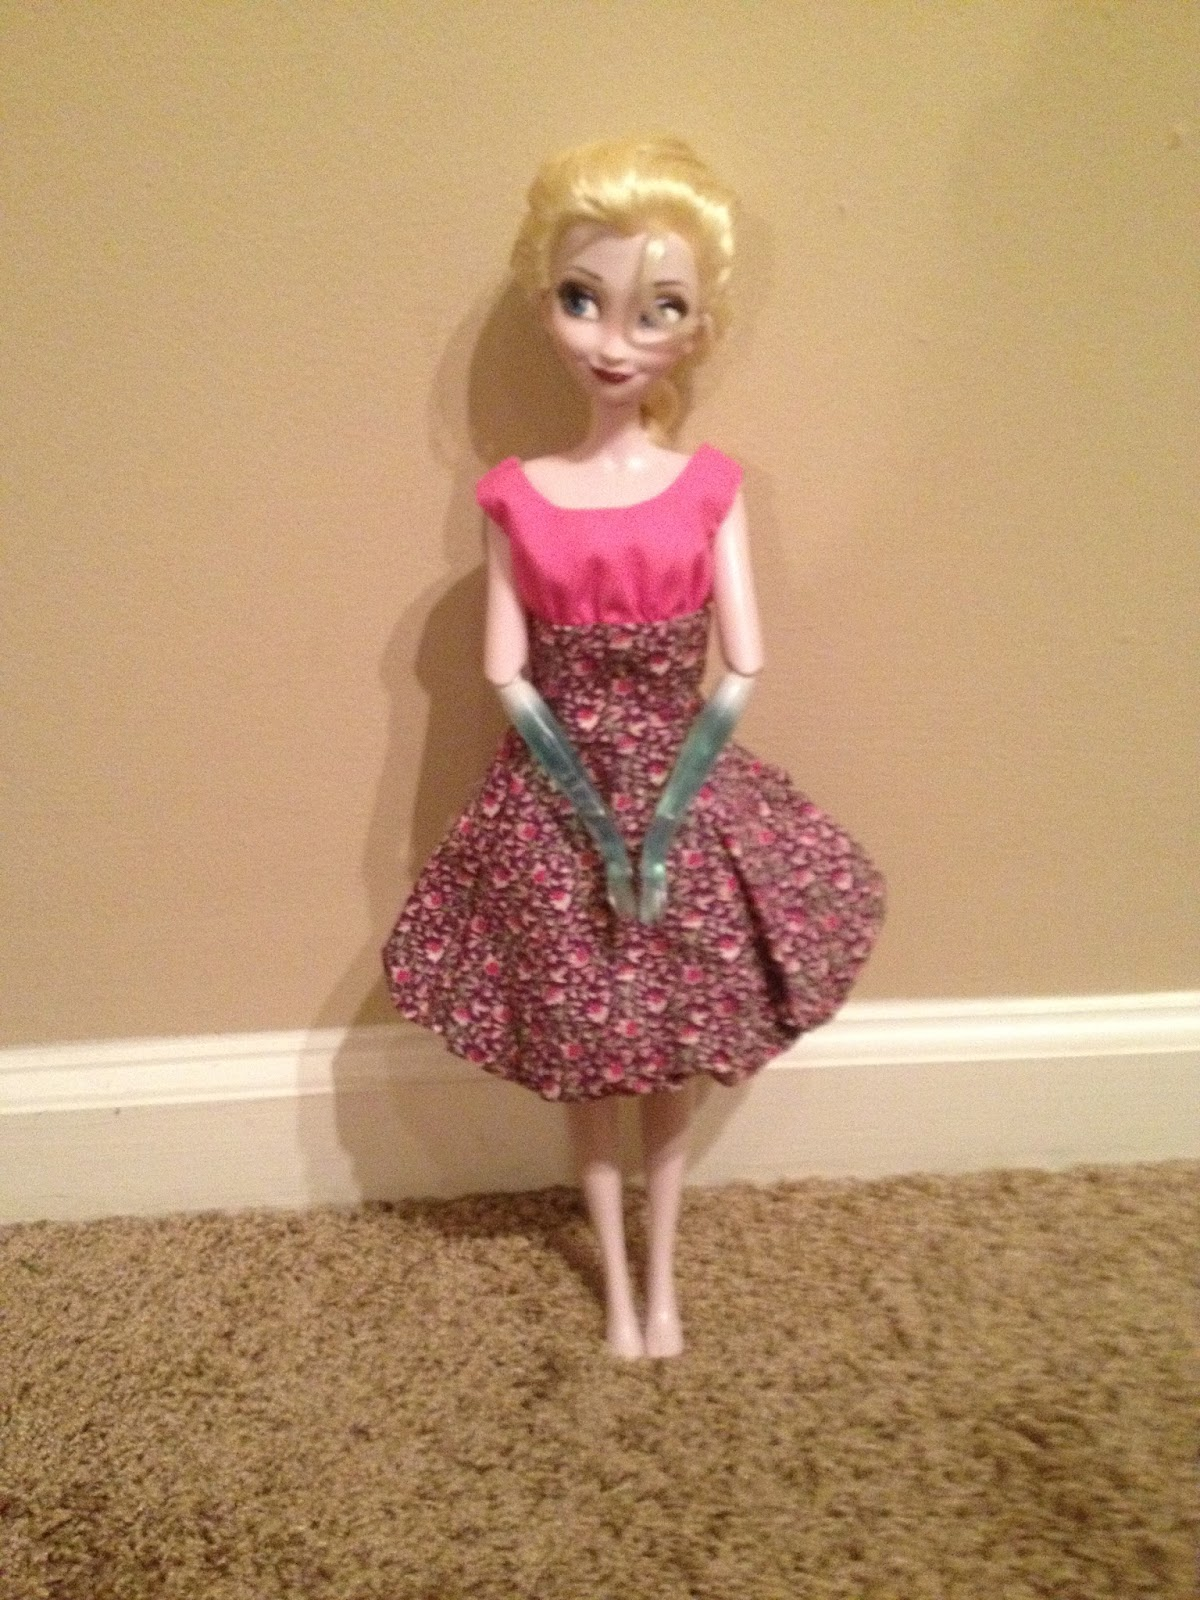 My Singing Elsa Was An Ebay Rescue So She Didnt Come With Her Shoes Does Have Original Ice Dress But Obviously Isnt Wearing It Here